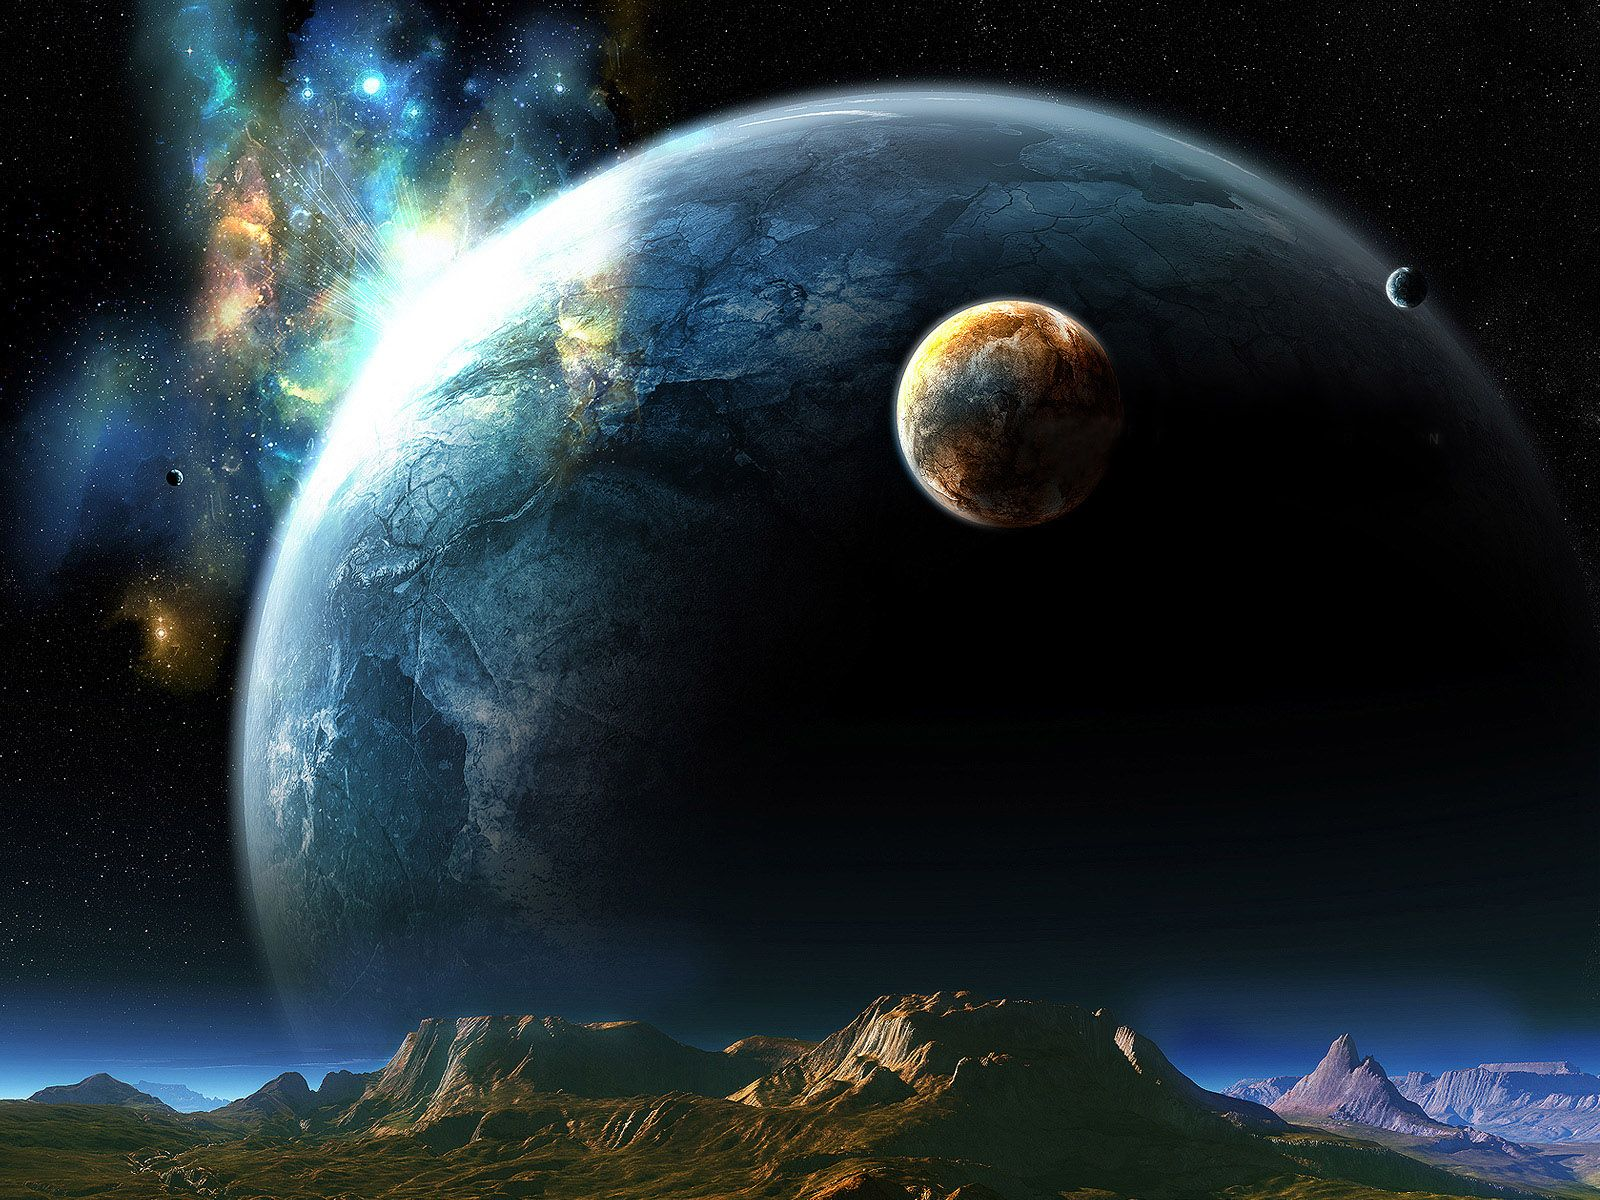 Universe Wallpaper 1080p Hd: Free HD 1080p Desktop Wallpapers